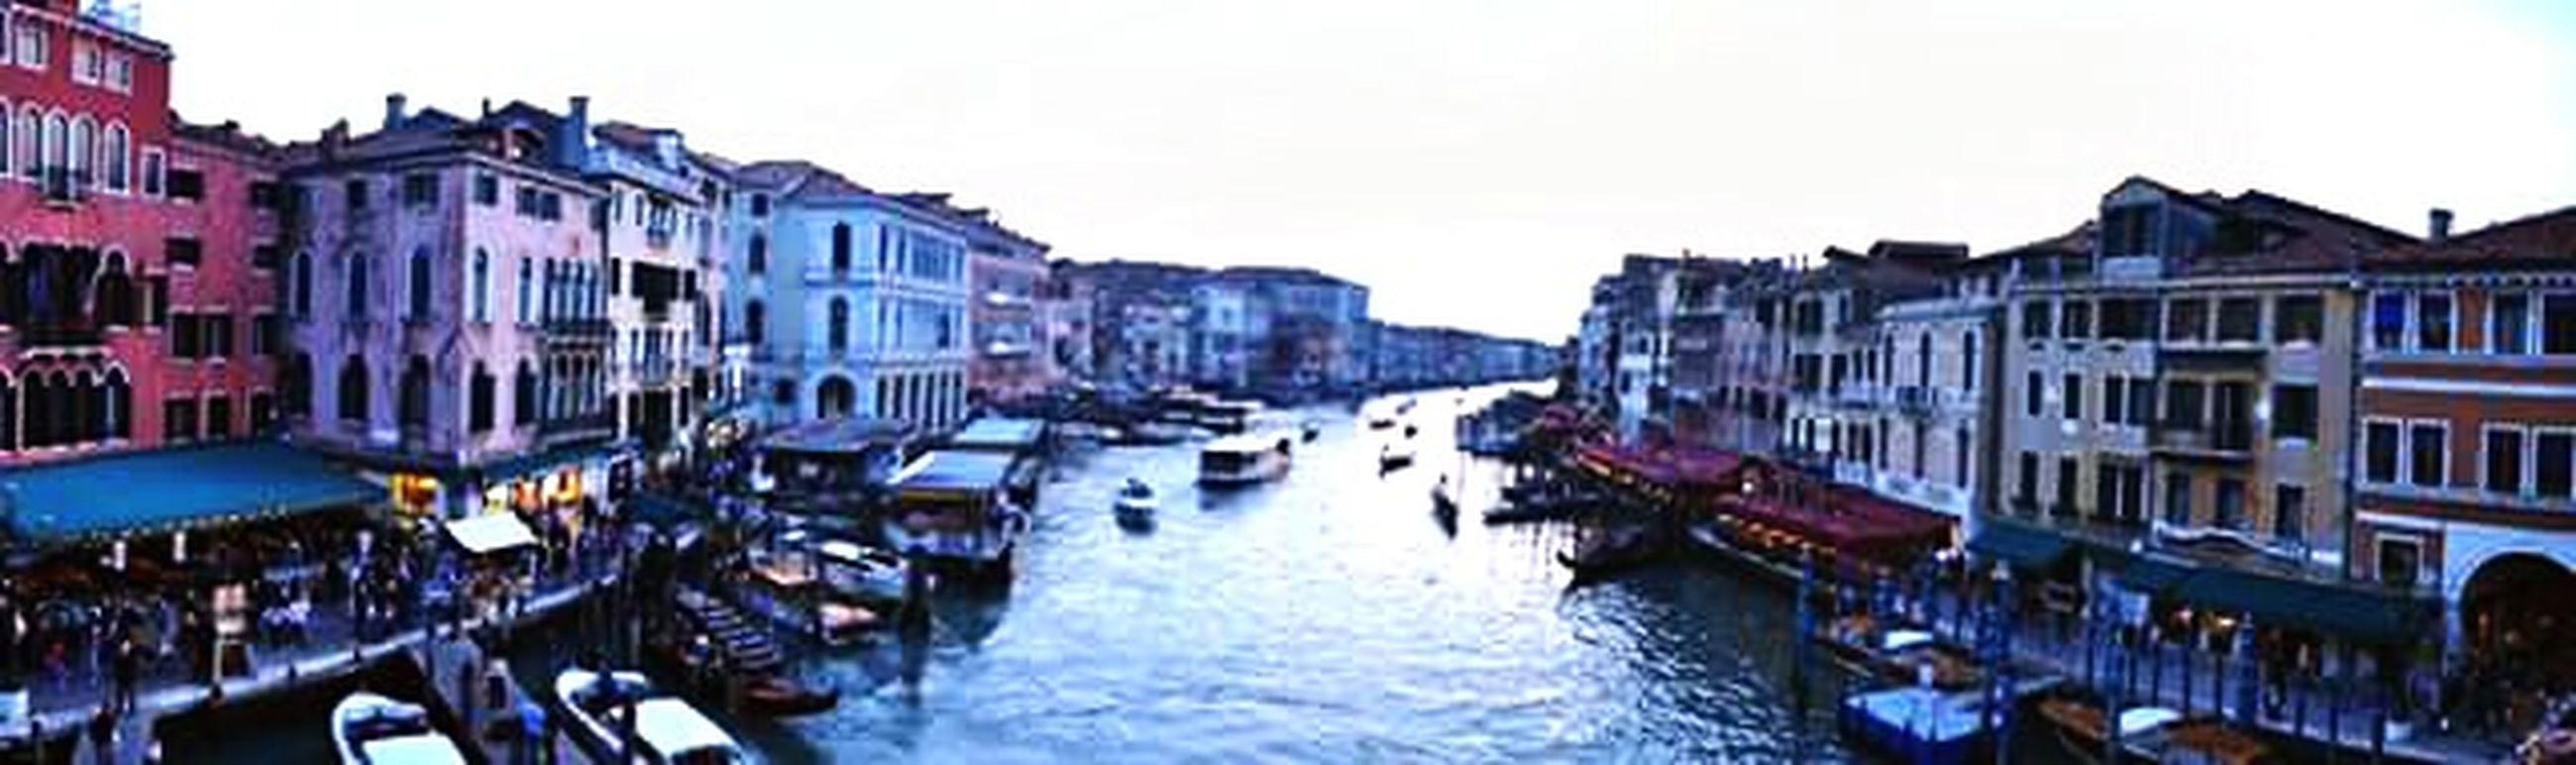 architecture, built structure, building exterior, canal, water, transportation, nautical vessel, mode of transport, boat, moored, waterfront, in a row, clear sky, residential structure, residential building, city, building, incidental people, diminishing perspective, day